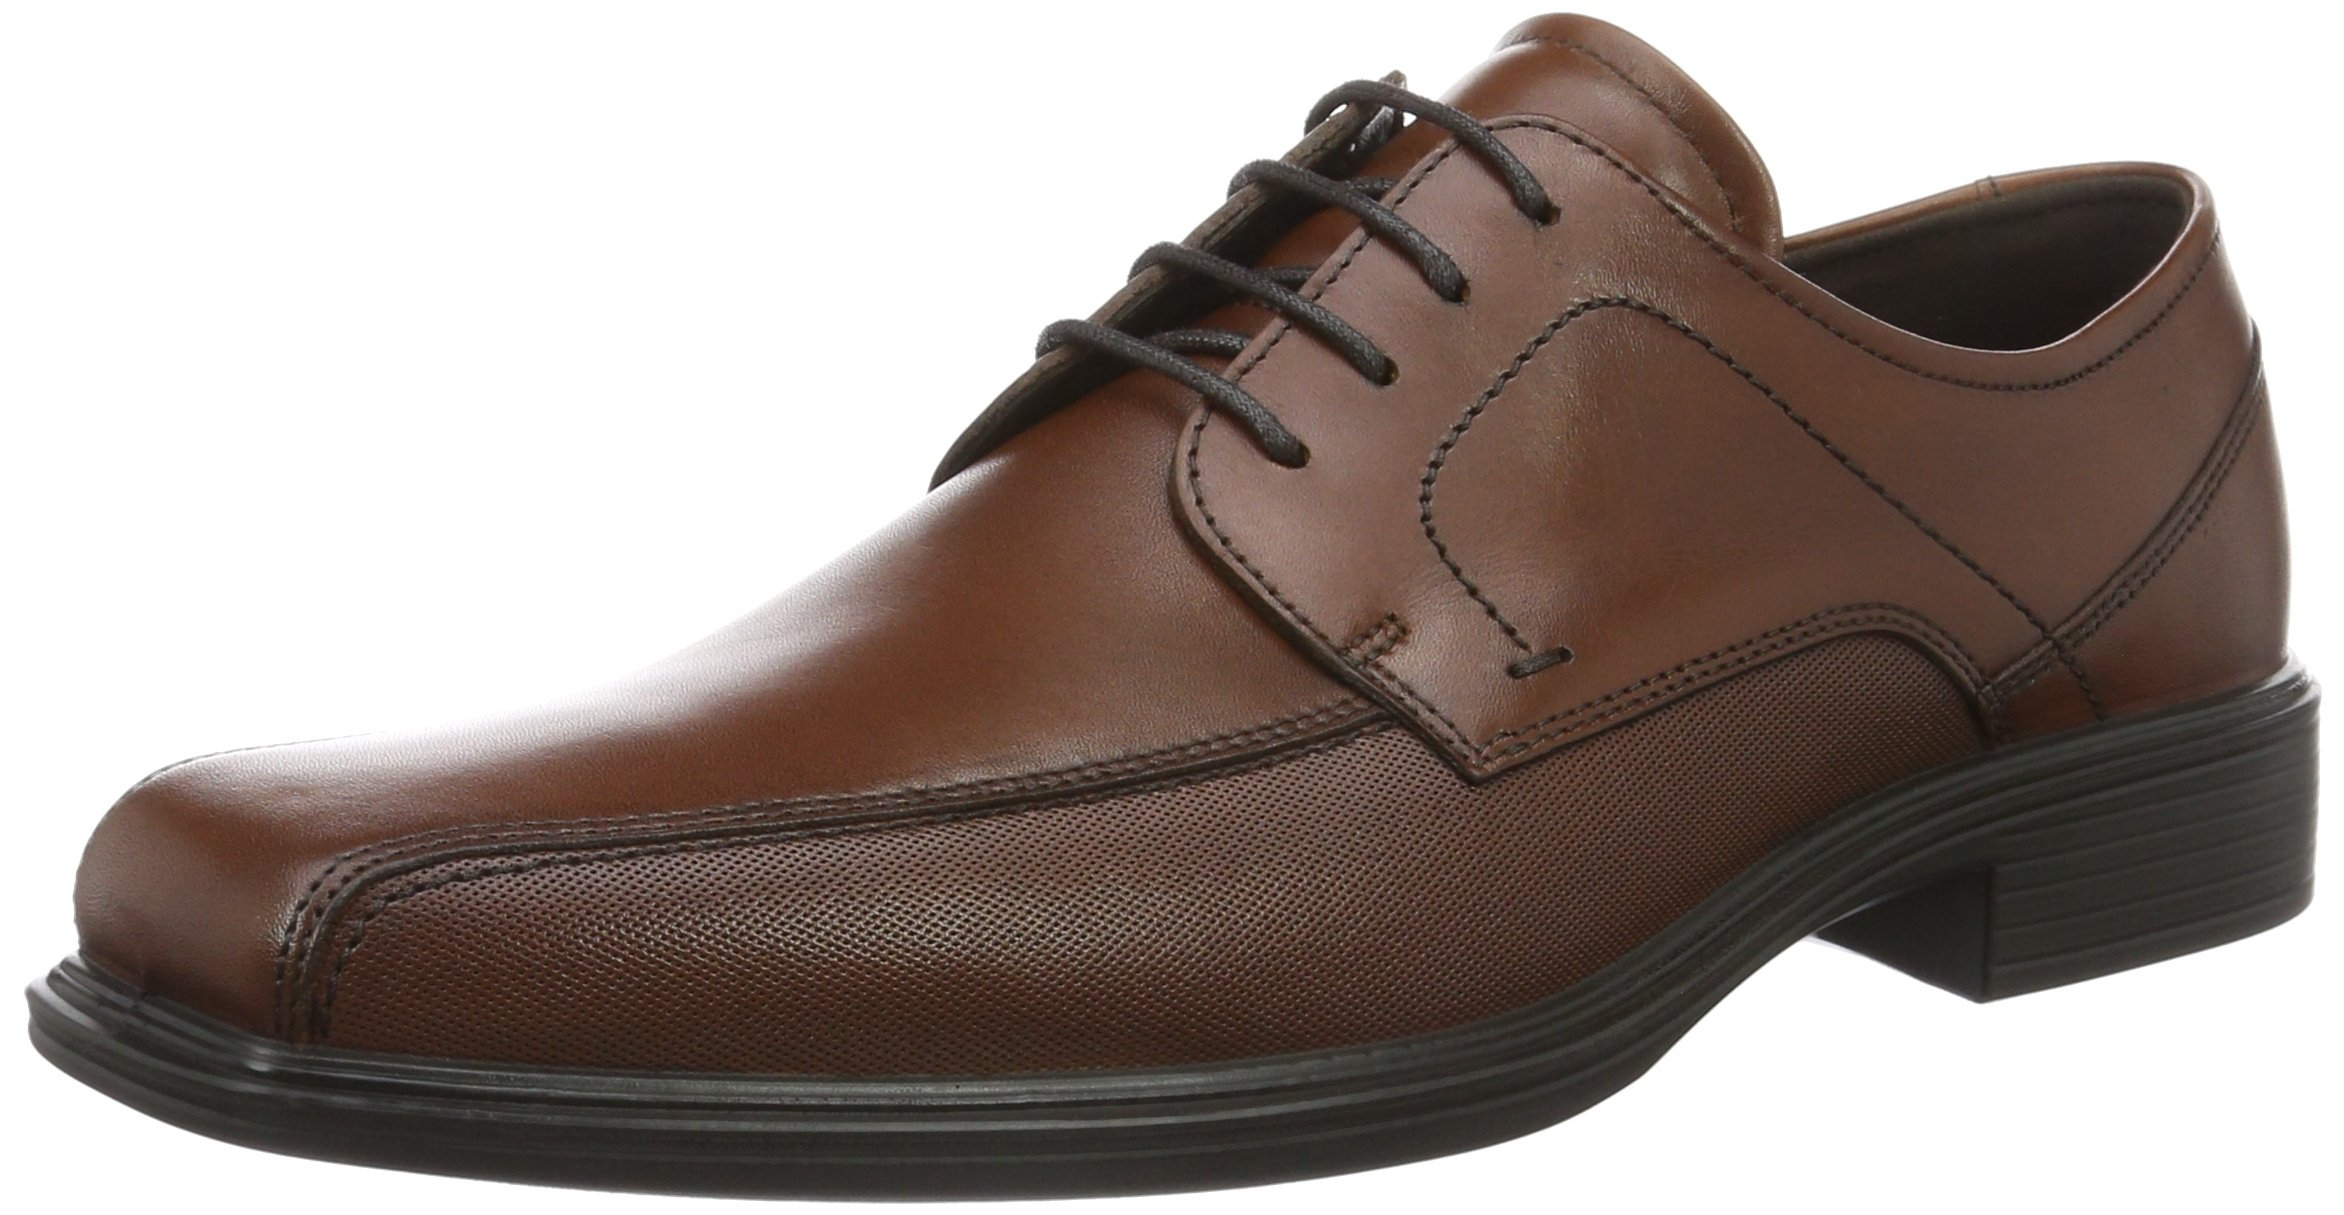 ECCO Men's Johannesburg Bike Toe Tie Oxford, Cognac, 46 EU/12-12.5 M US